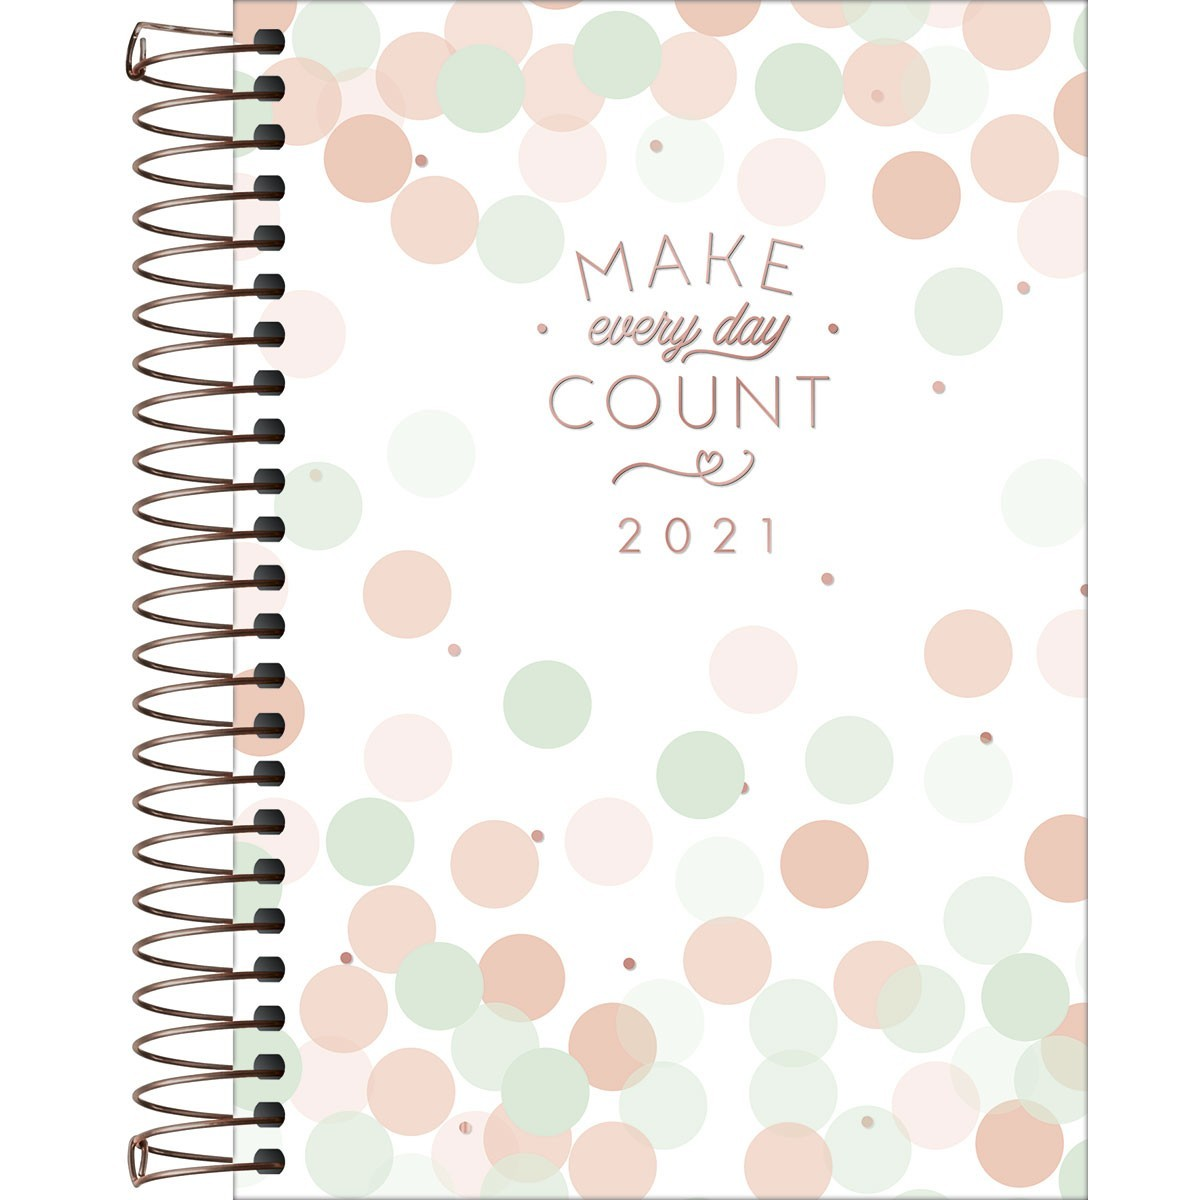 Agenda Espiral Diária Soho Make Every Day Count 2021